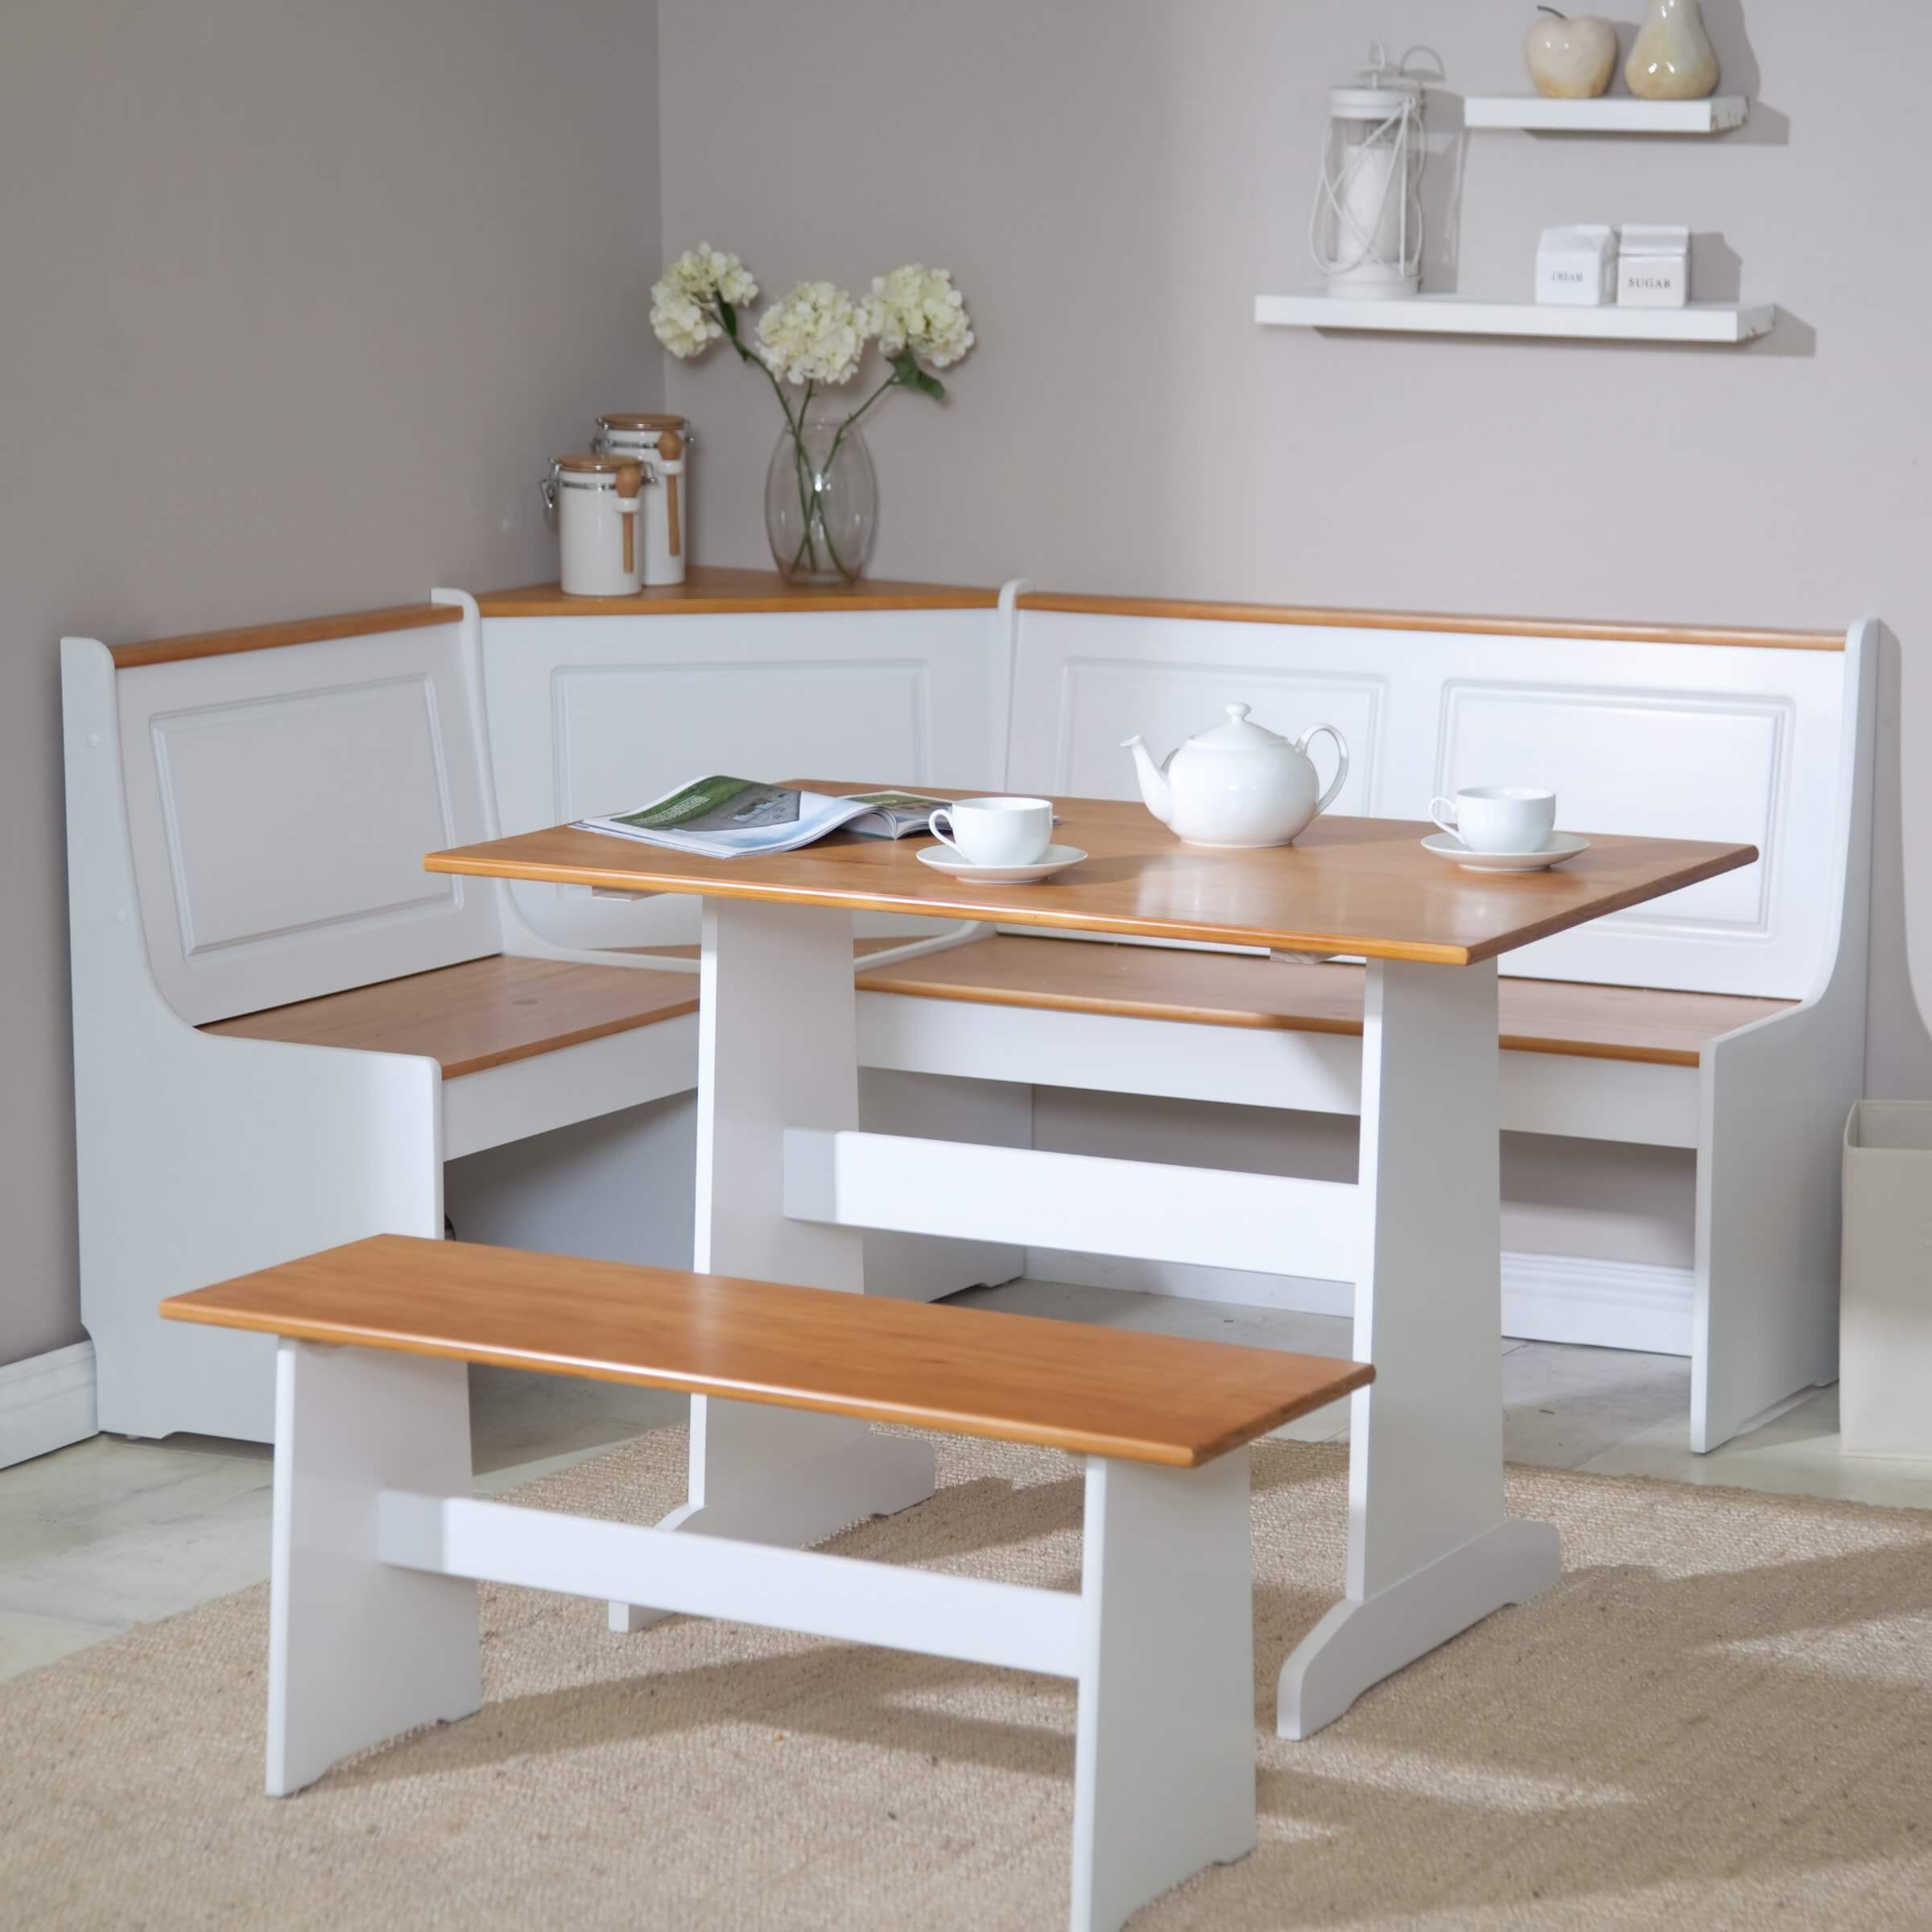 Space saving dining furniture - This Three Piece Breakfast Nook Can Help Brighten Up Your Space Or Fit In Nicely With